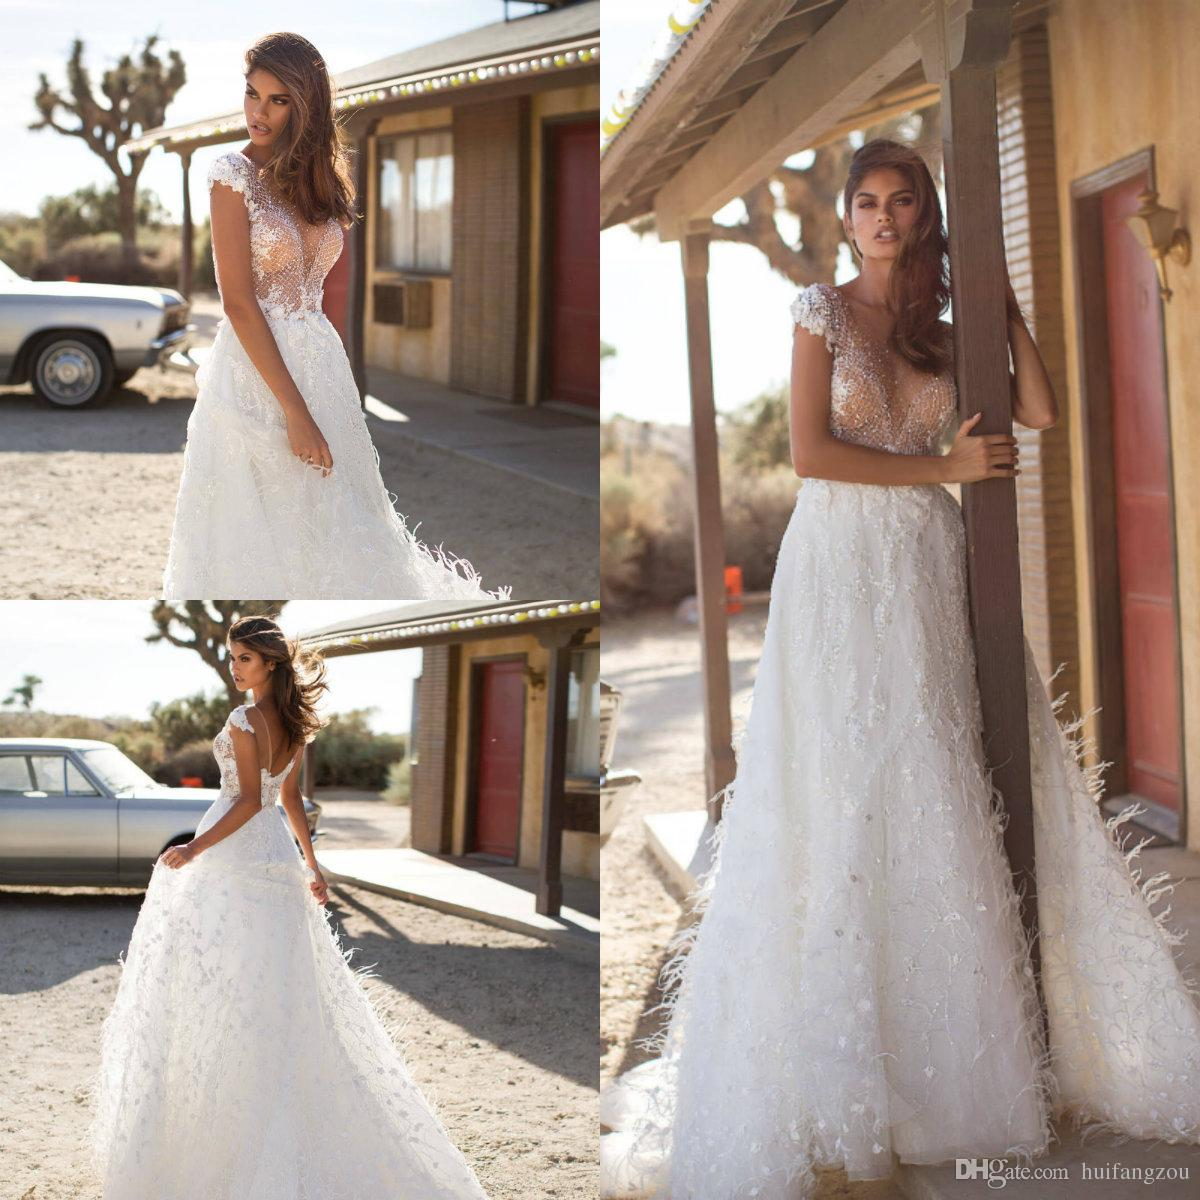 7a5ca5f1 Discount 2019 Gorgeous A Line Wedding Dresses Sheer Neck Lace Applique  Sequins Illusion Boho Wedding Dress Milla Nova Feathers Designer Bridal  Gowns Long ...